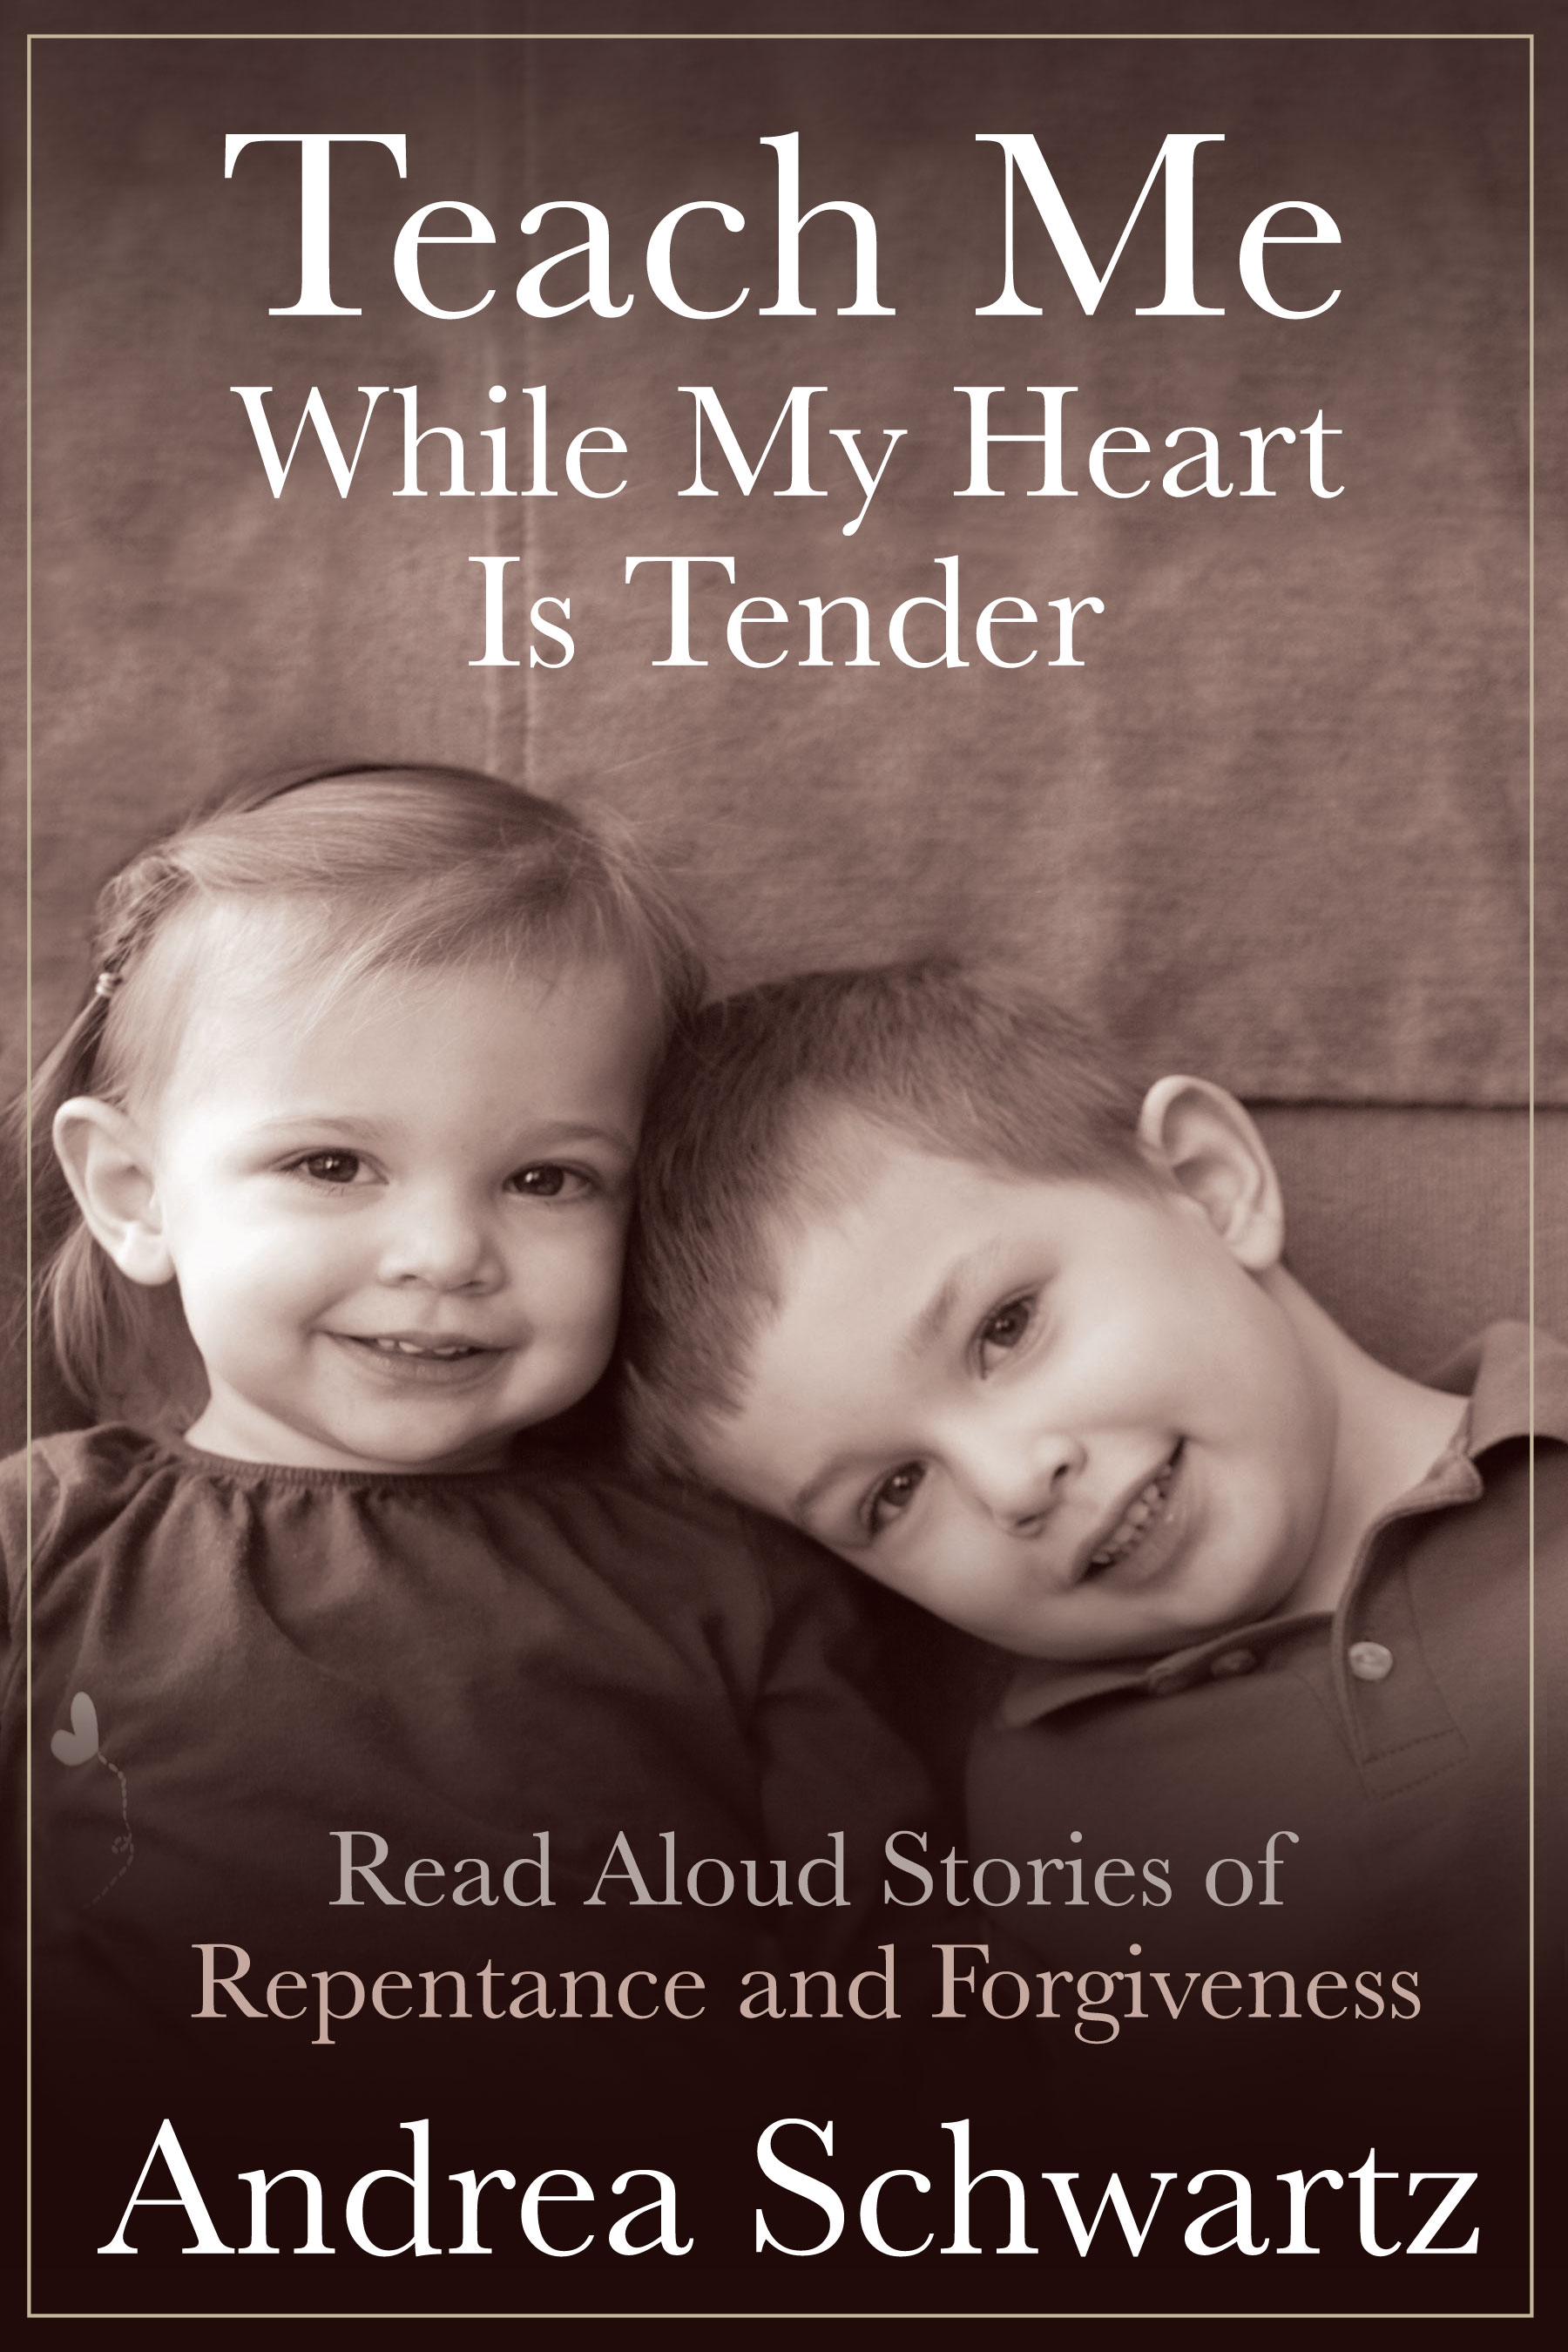 Teach Me While My Heart Is Tender